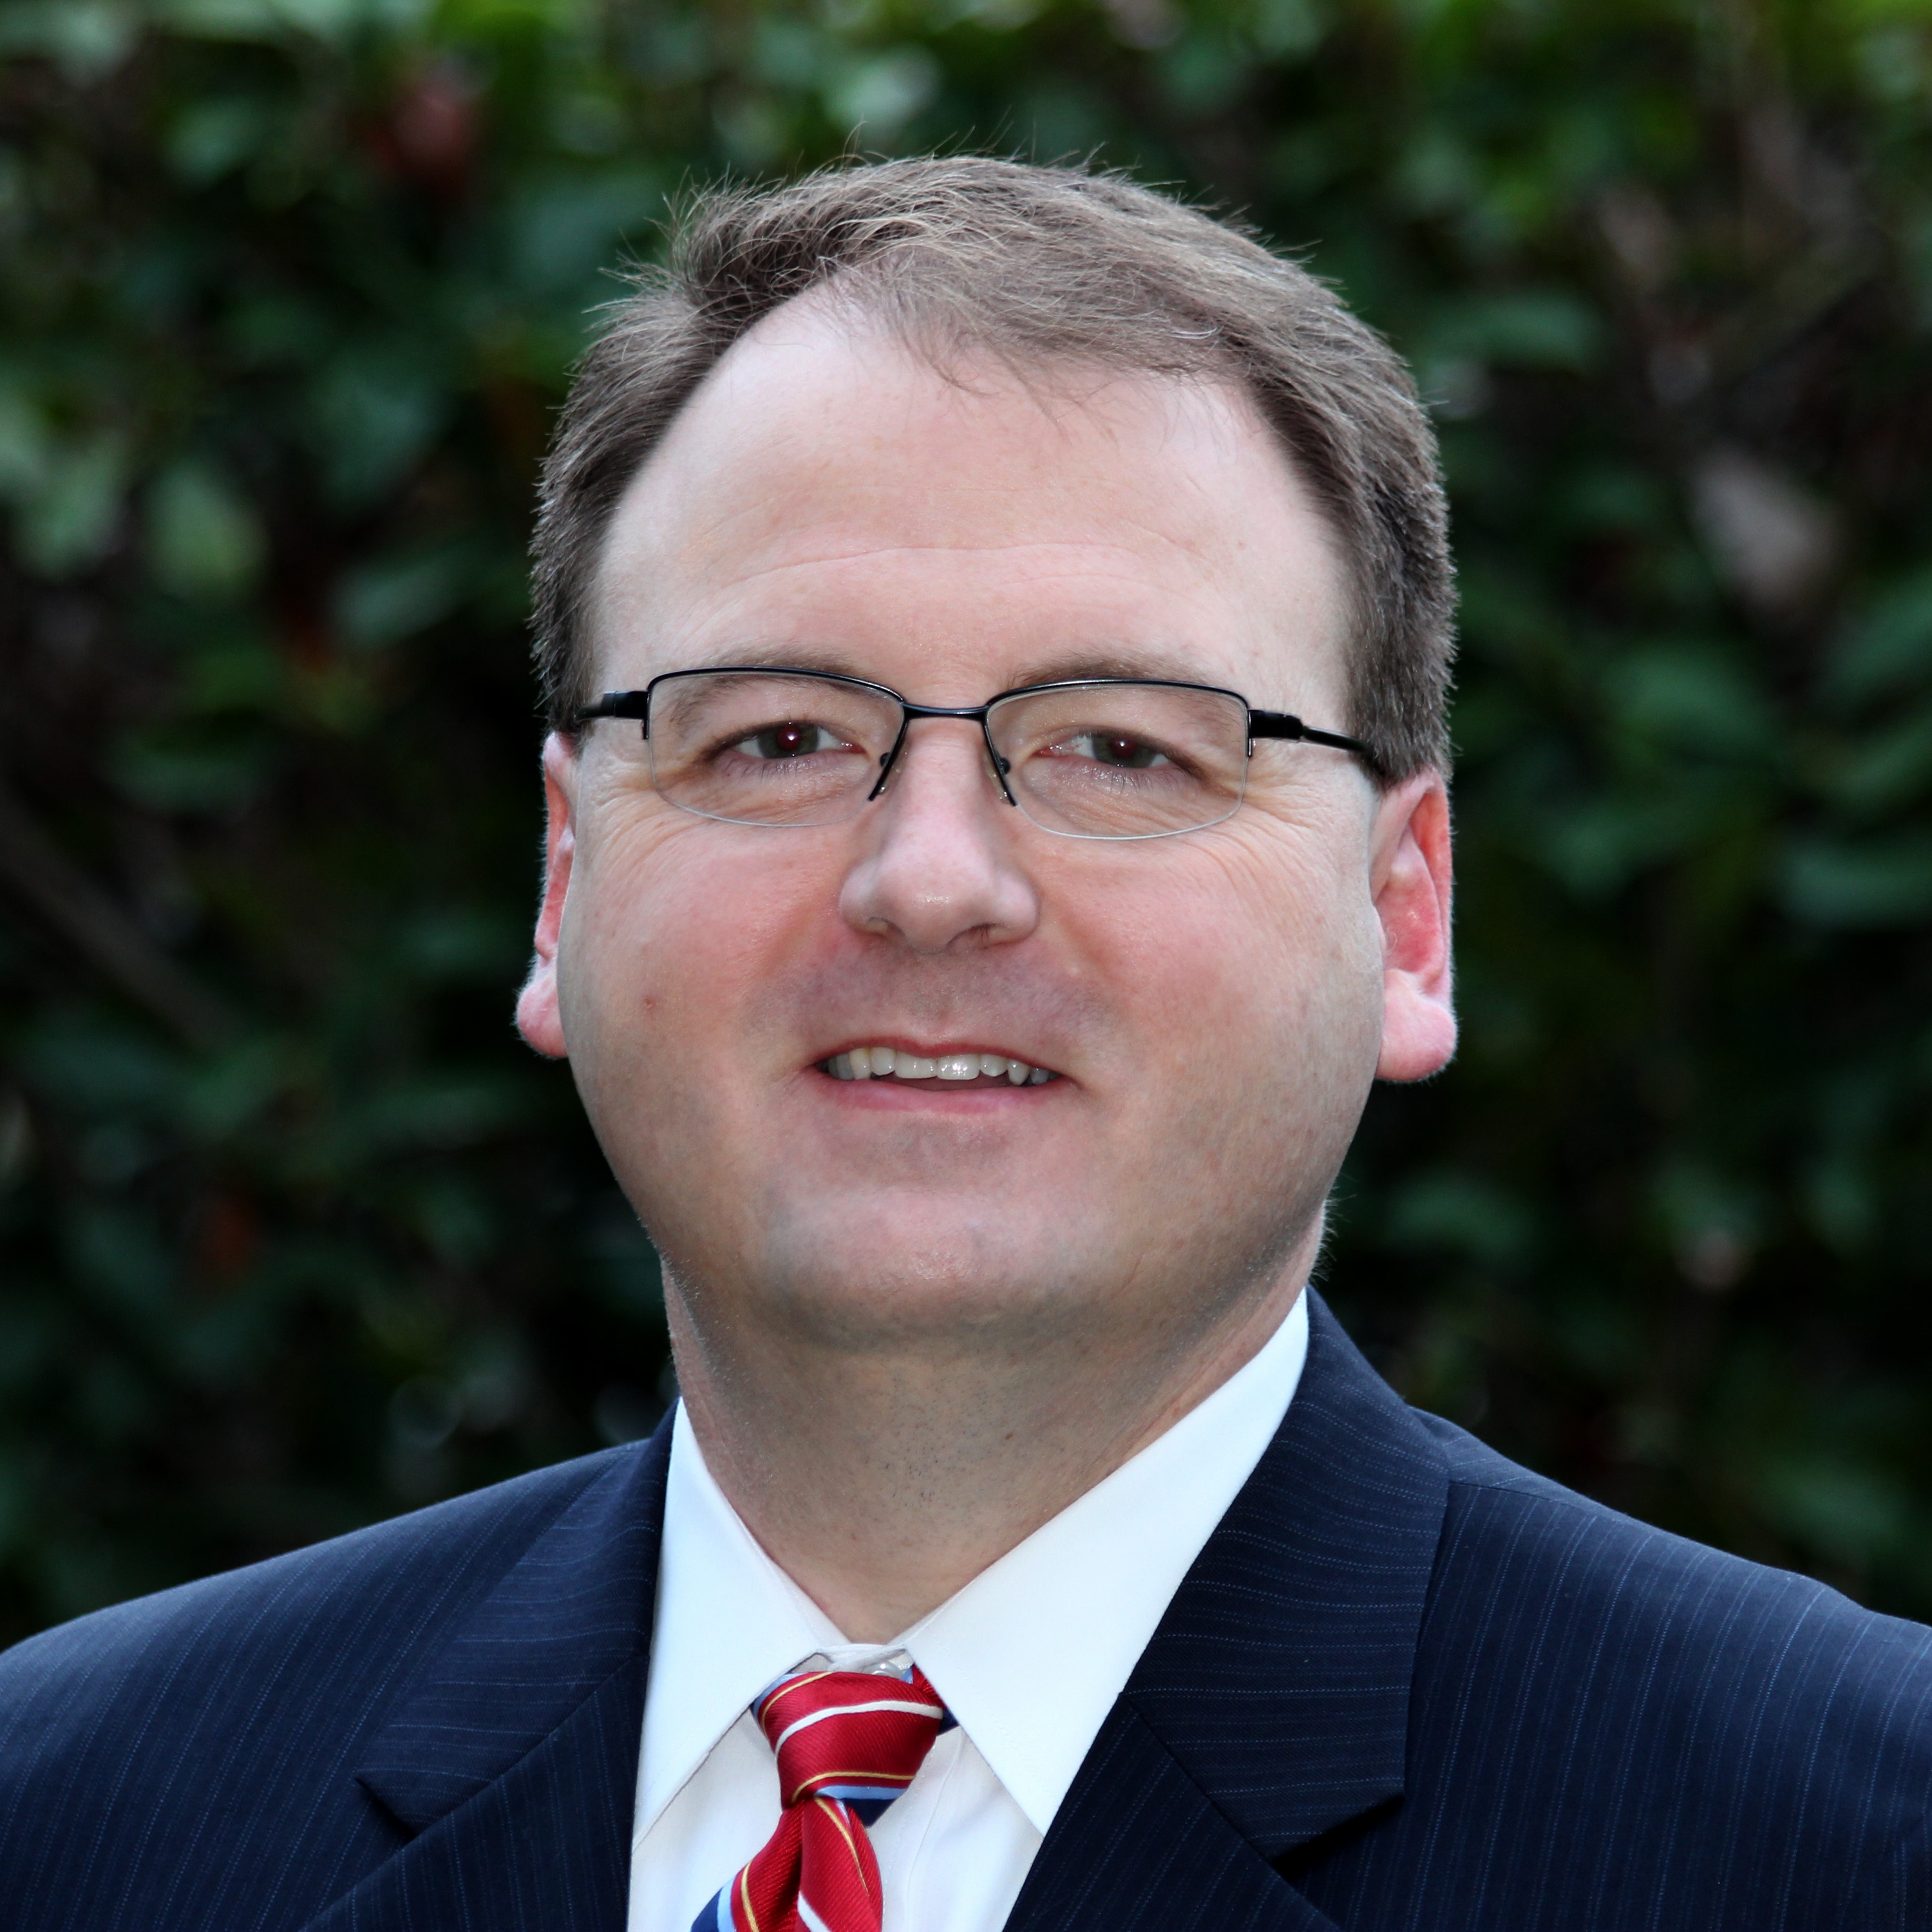 Wes K. Waggoner new dean of undergraduate admission at SMU